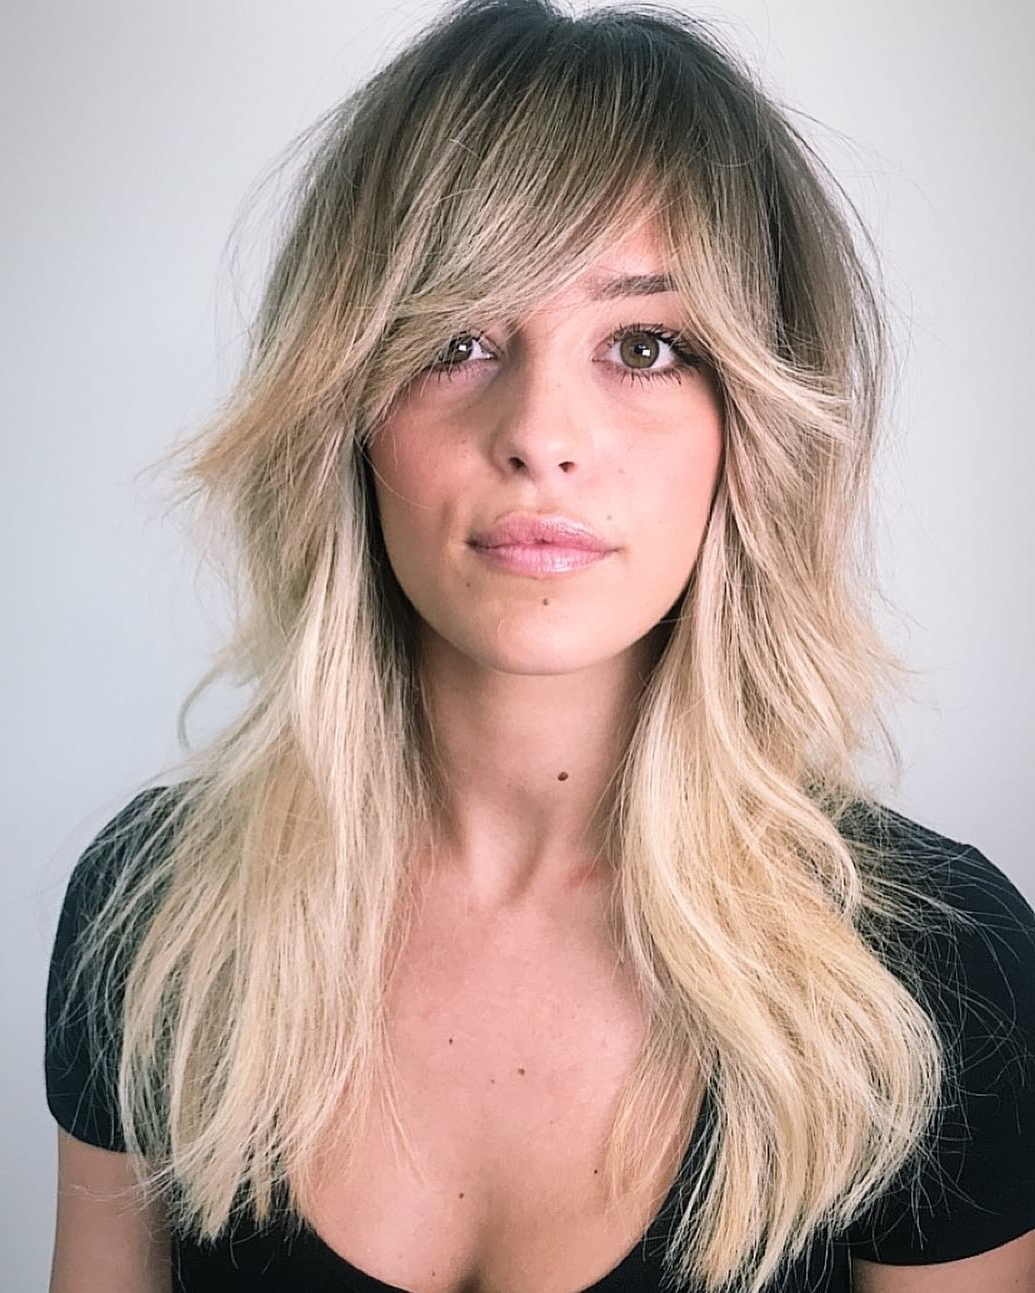 The Most Instagrammable Hairstyles With Bangs In 2019 Throughout Curly Messy Bob Hairstyles With Side Bangs (View 19 of 20)